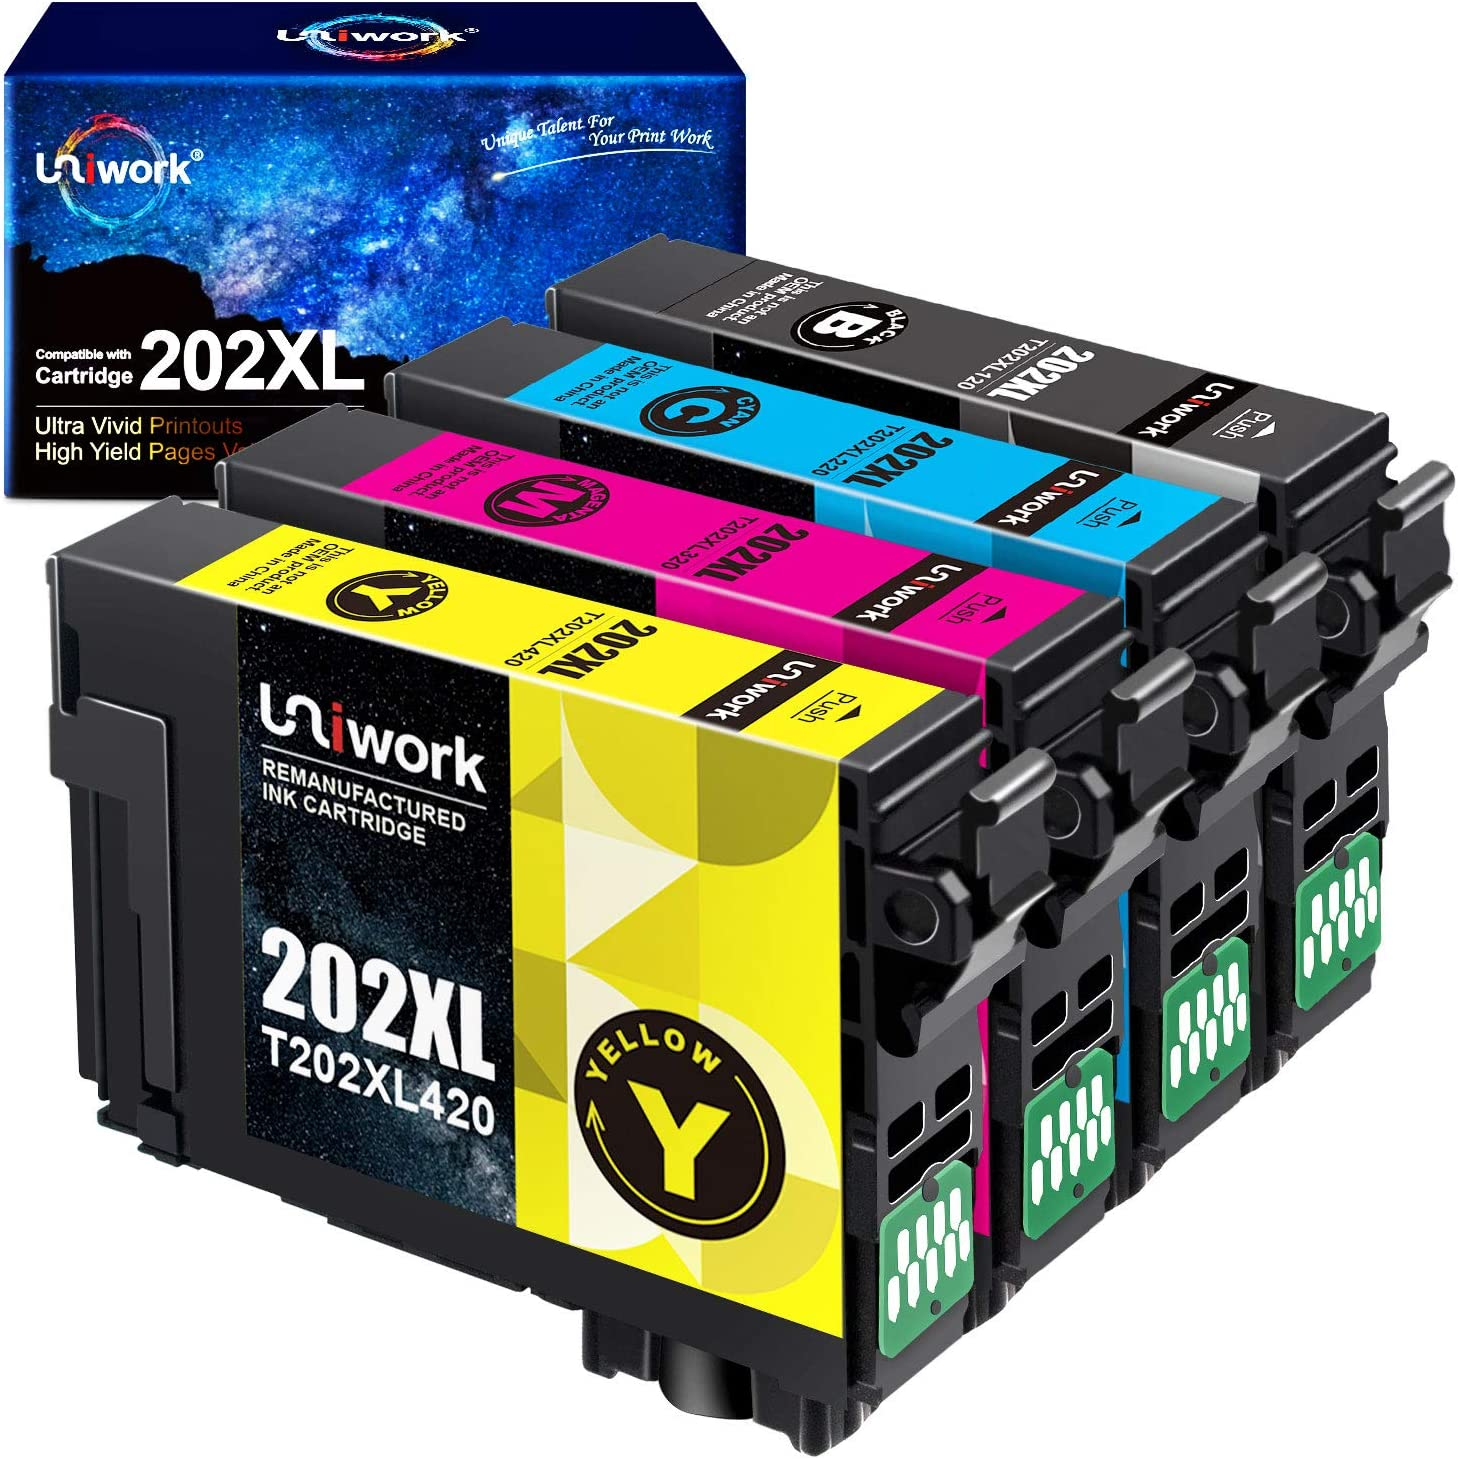 Uniwork Remanufactured Ink Cartridge Replacement for Epson 202 202XL T202XL T202 to use for Workforce WF-2860 Expression Home XP-5100 Printer (1 Black, 1 Cyan, 1 Magenta, 1 Yellow, 4 Pack)